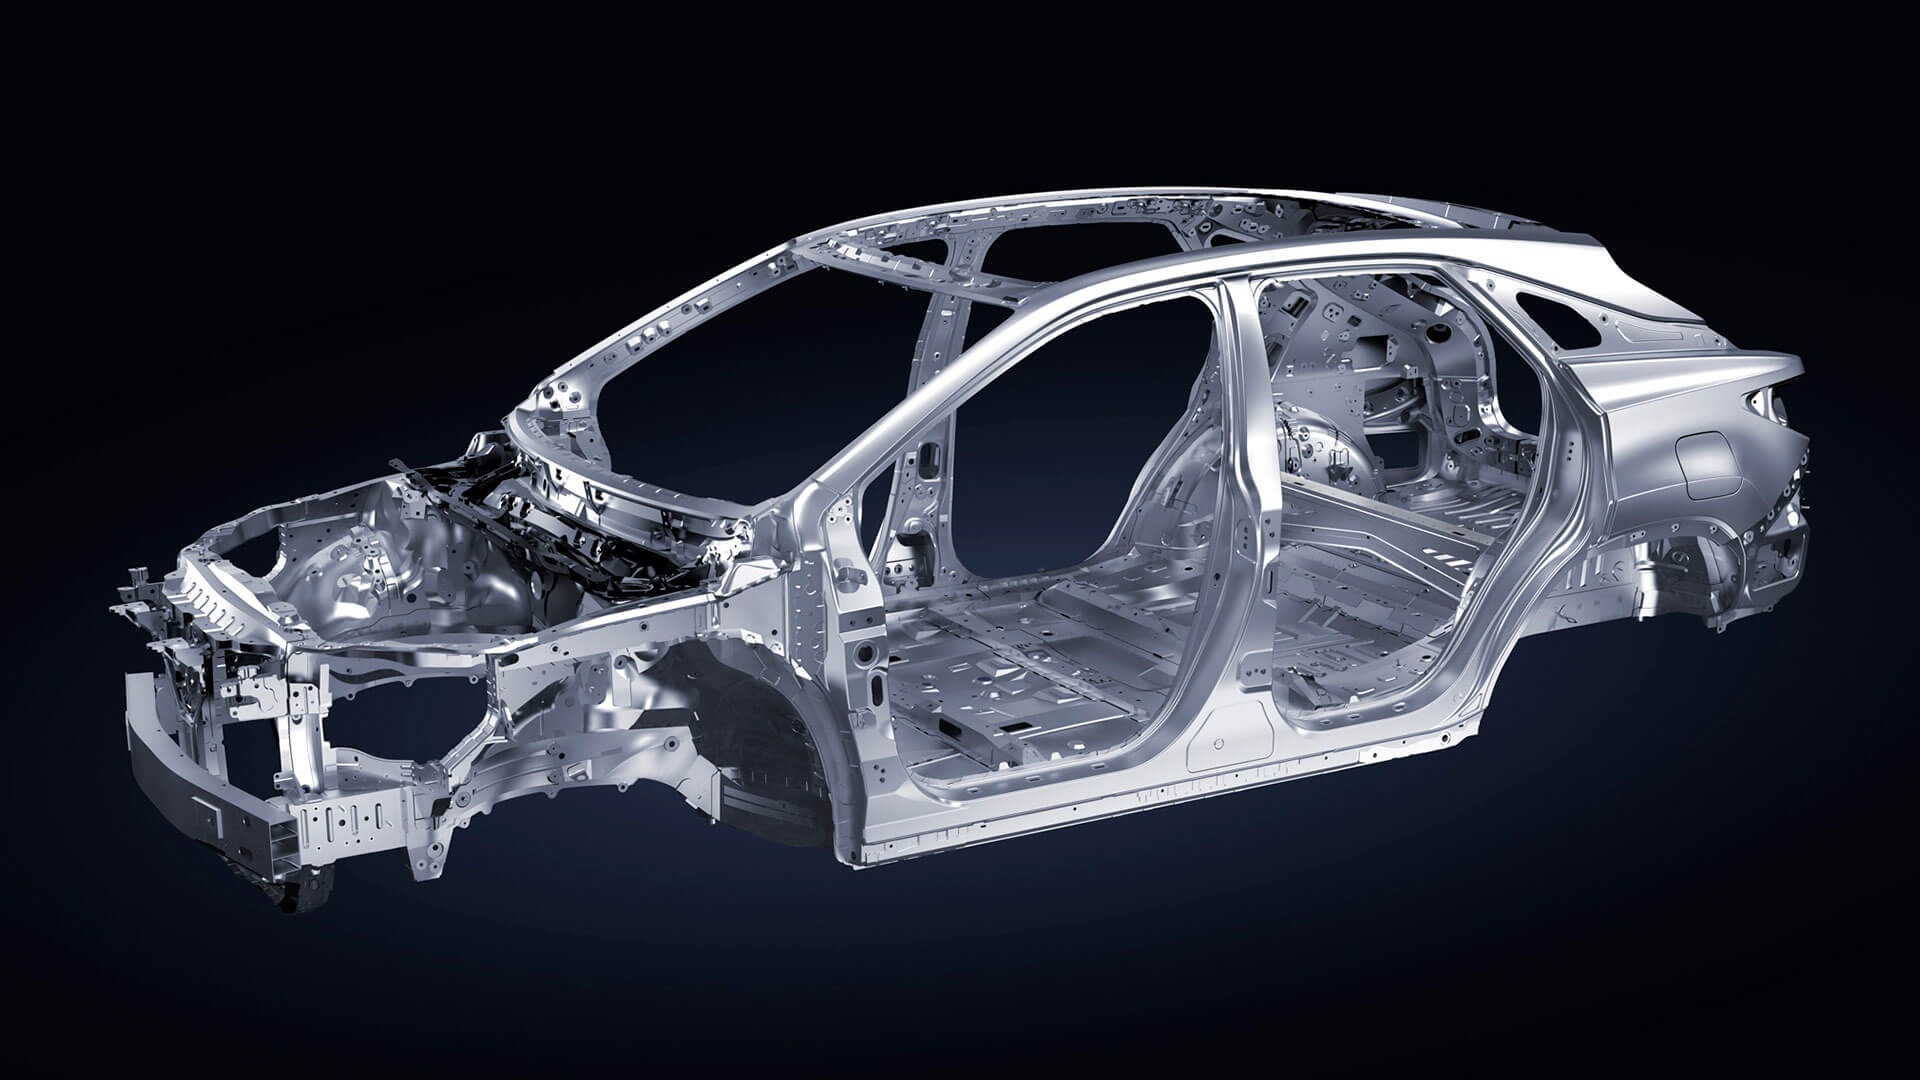 2017 lexus rx 450h features chassis